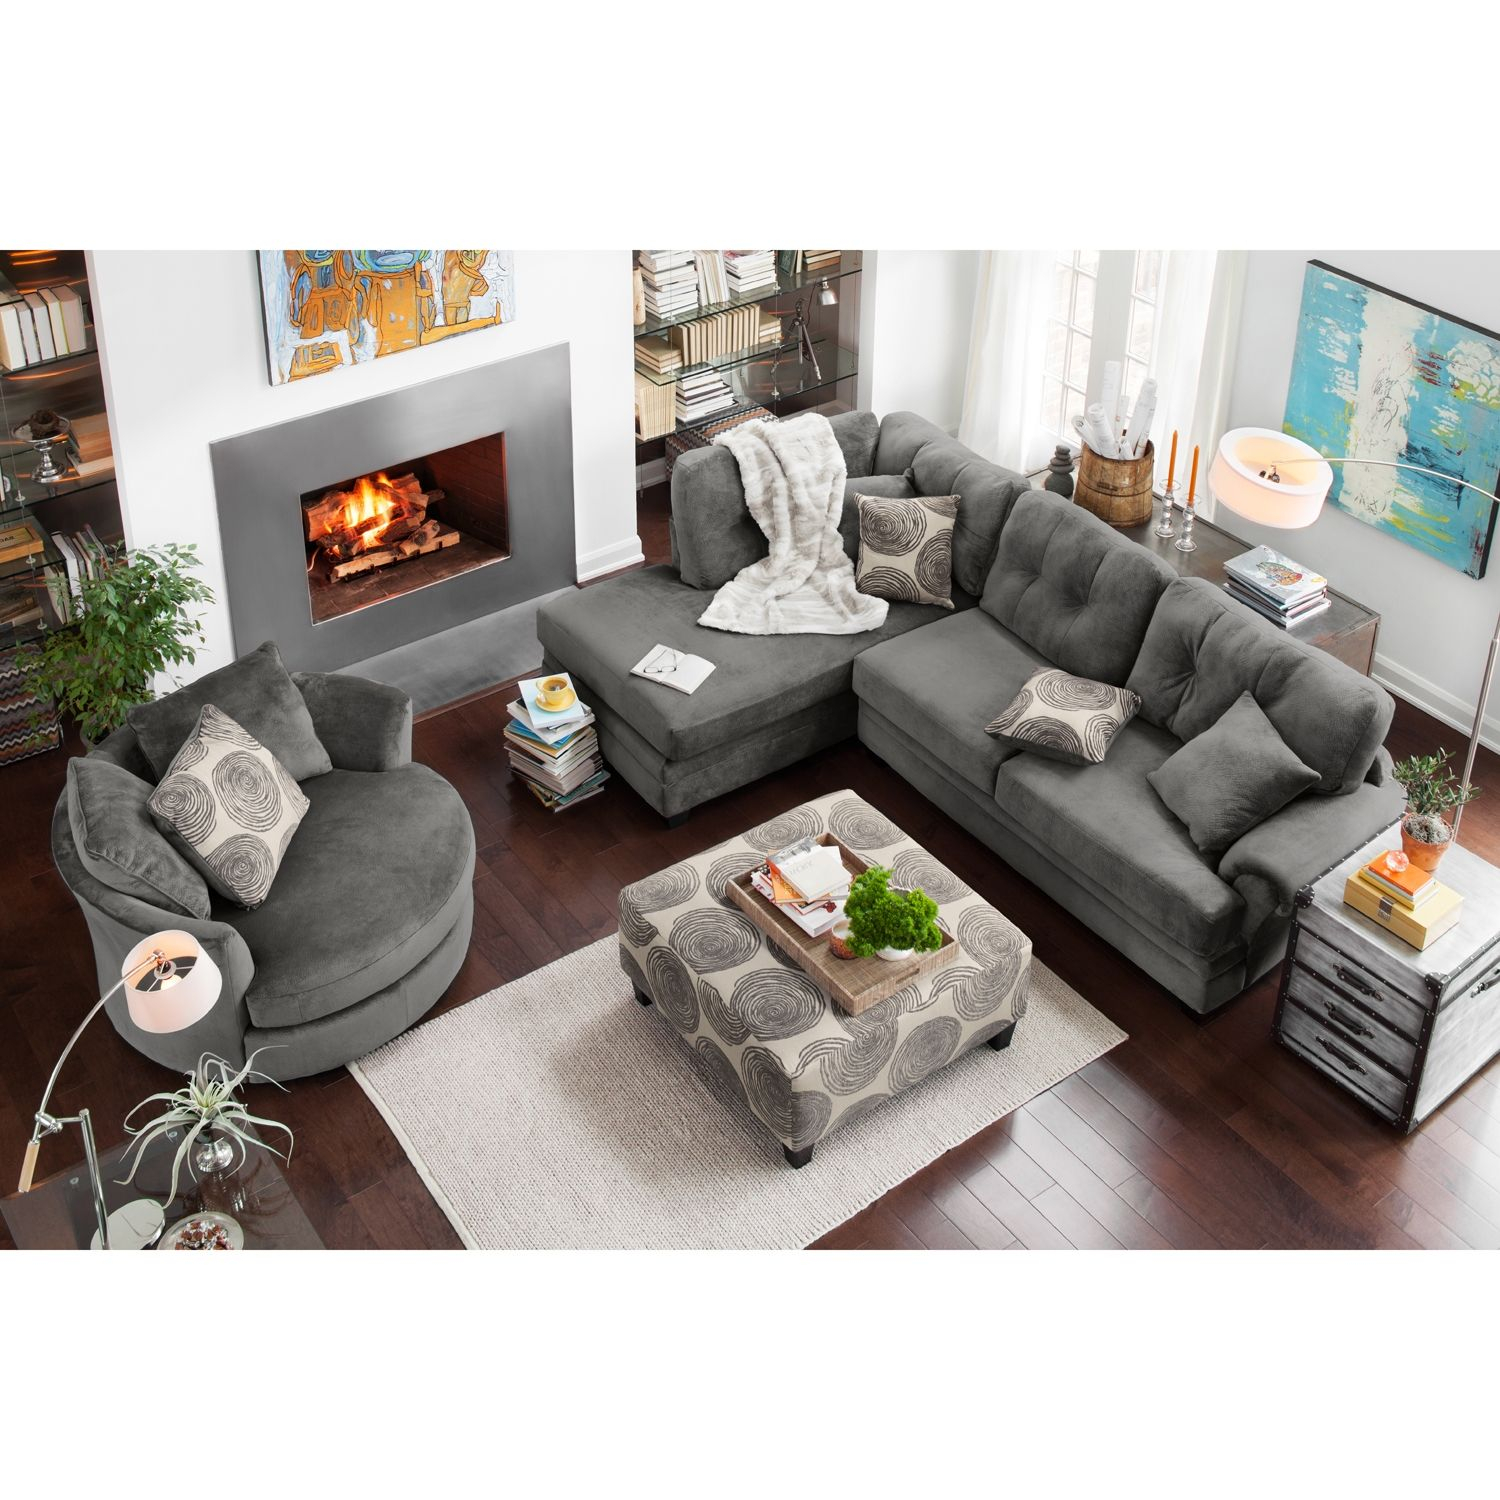 Cordelle 2 Piece Sectional With Chaise And Swivel Chair Set for Chair Set For Living Room